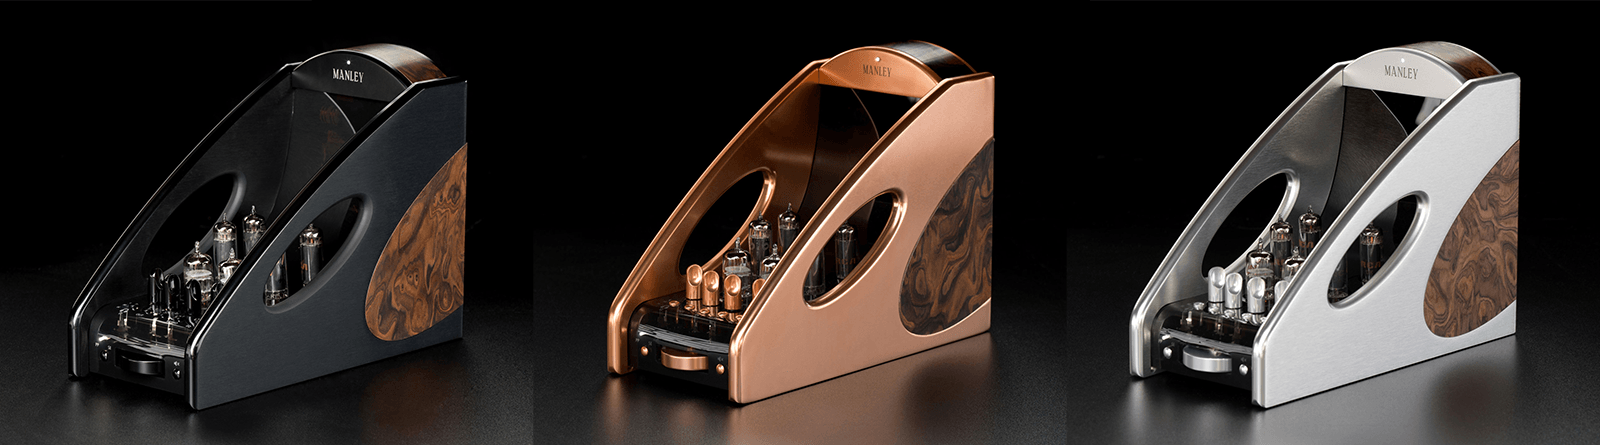 Manley Labs Absolute amp in black, copper, and silver